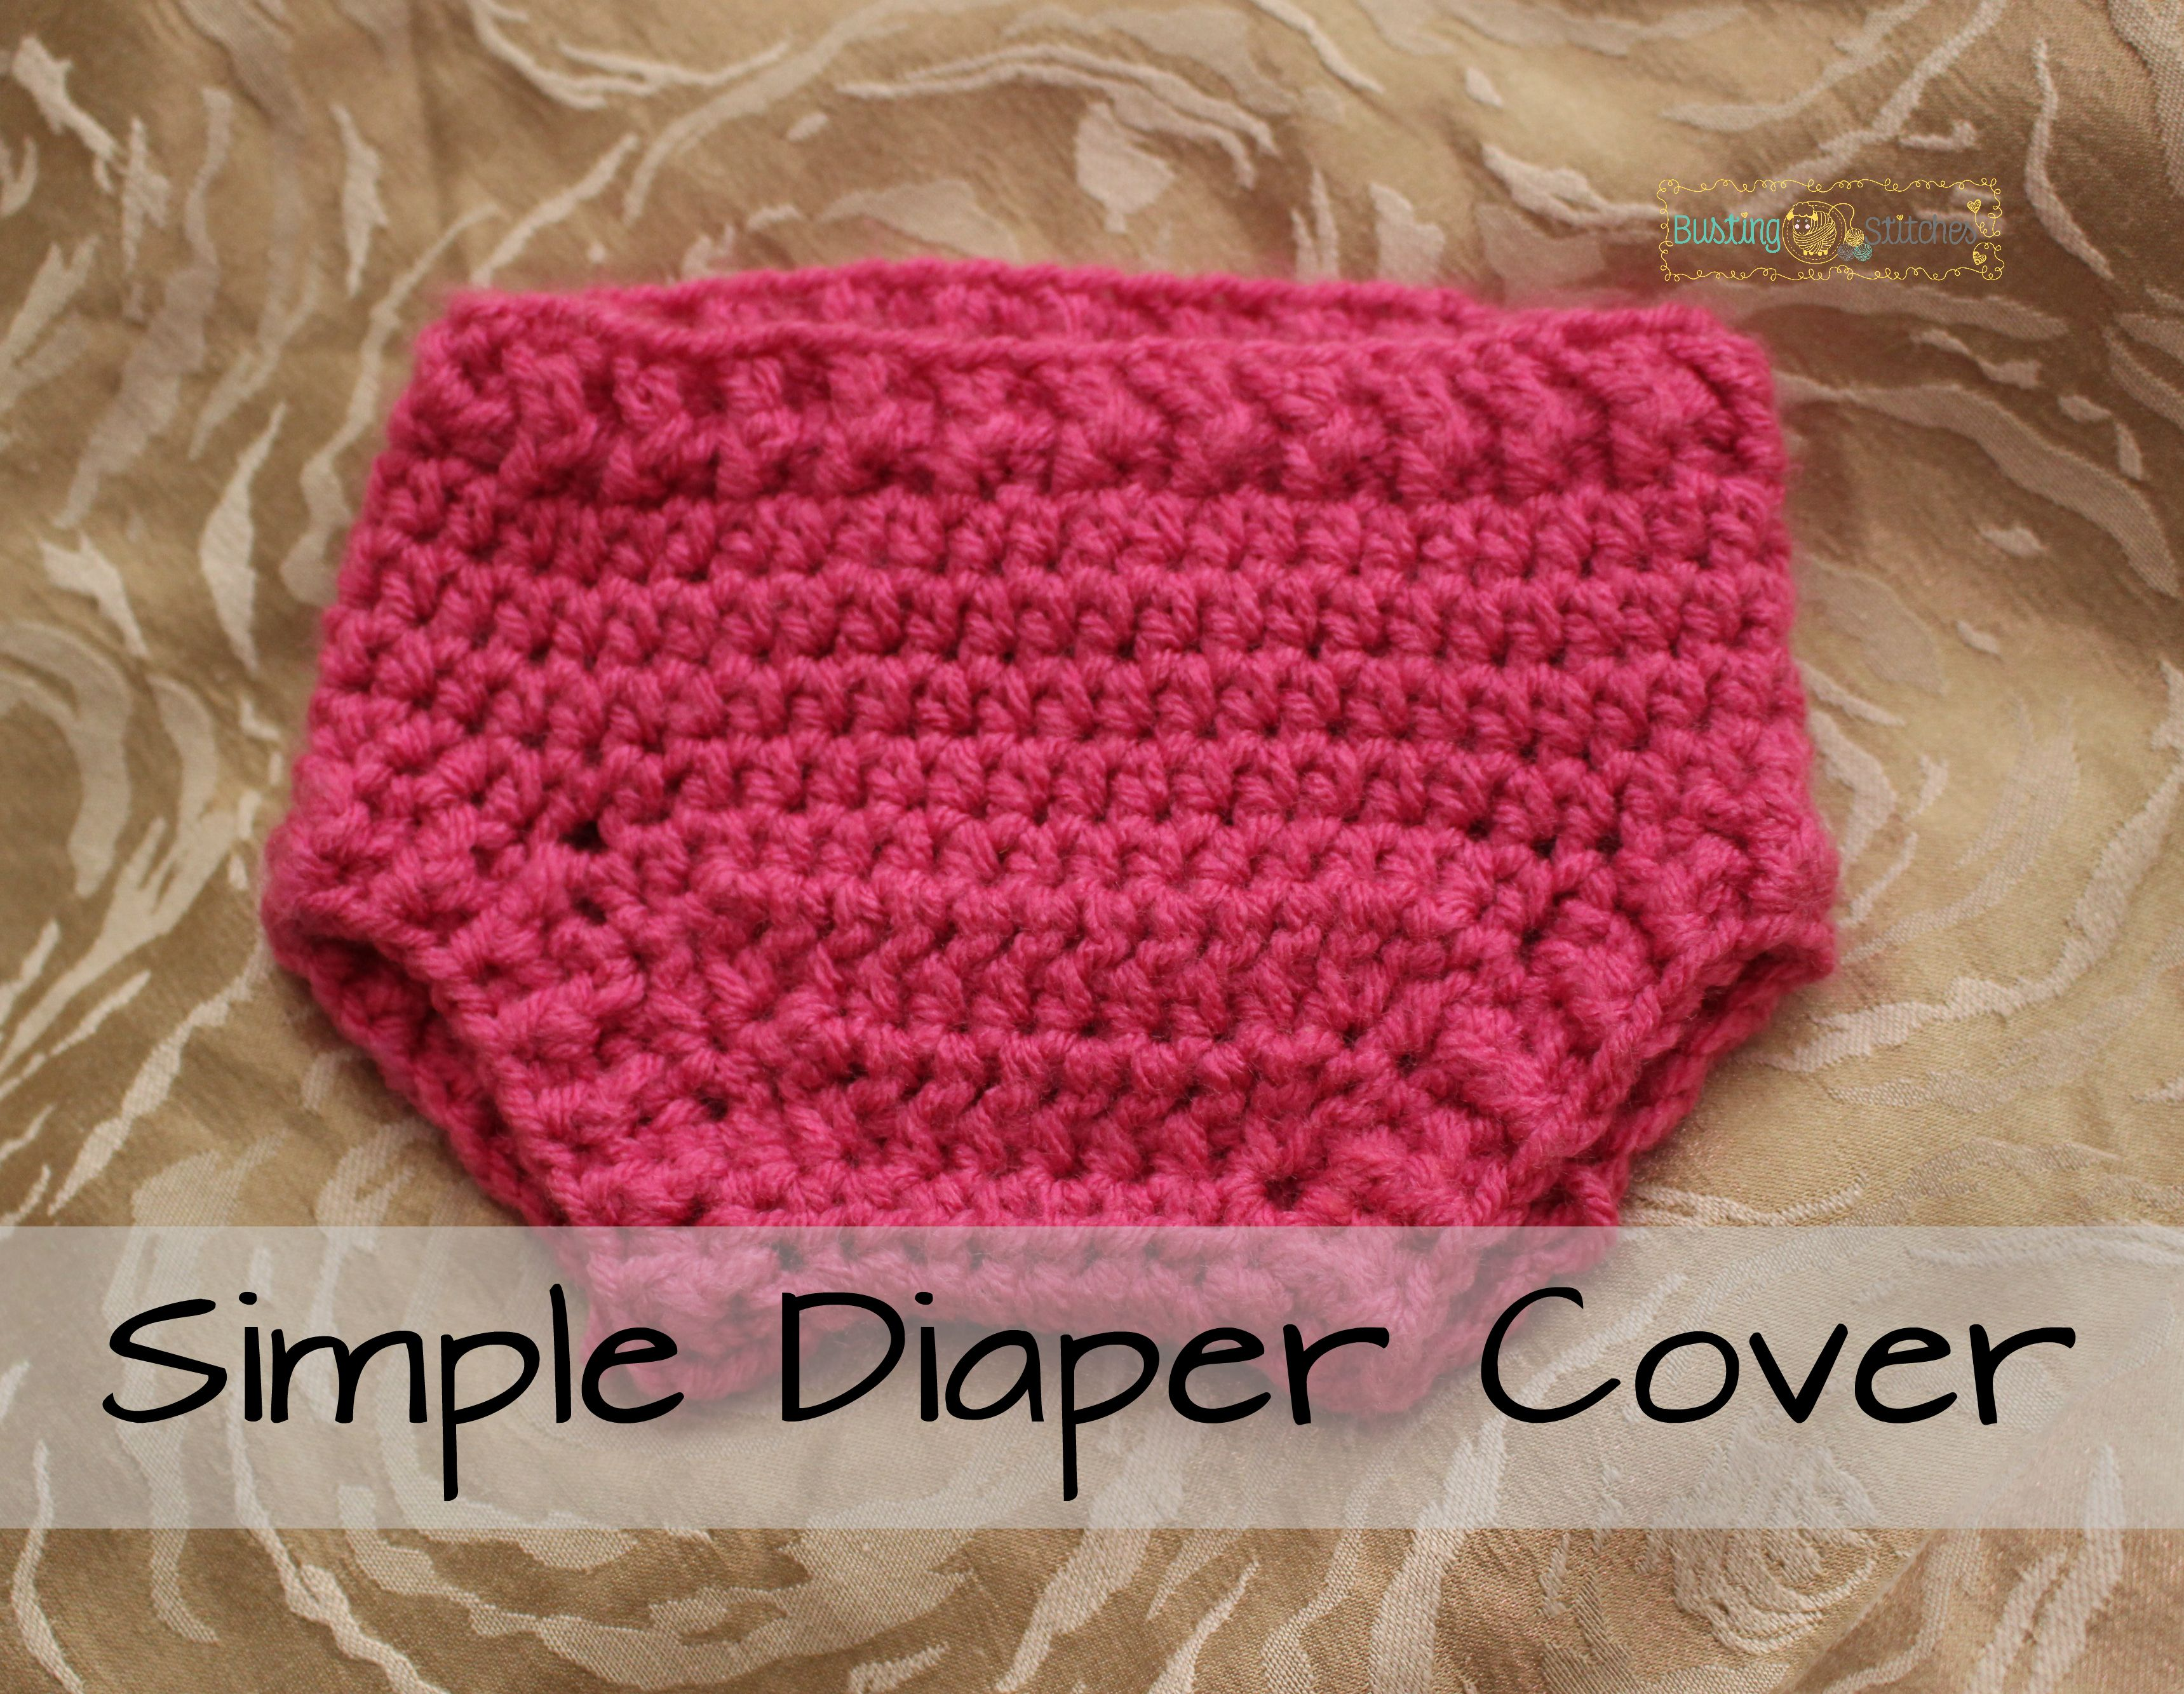 Crochet Patterns For Baby Hats And Diaper Covers : Simple Diaper Cover Free Crochet Pattern Crochet-25 ...